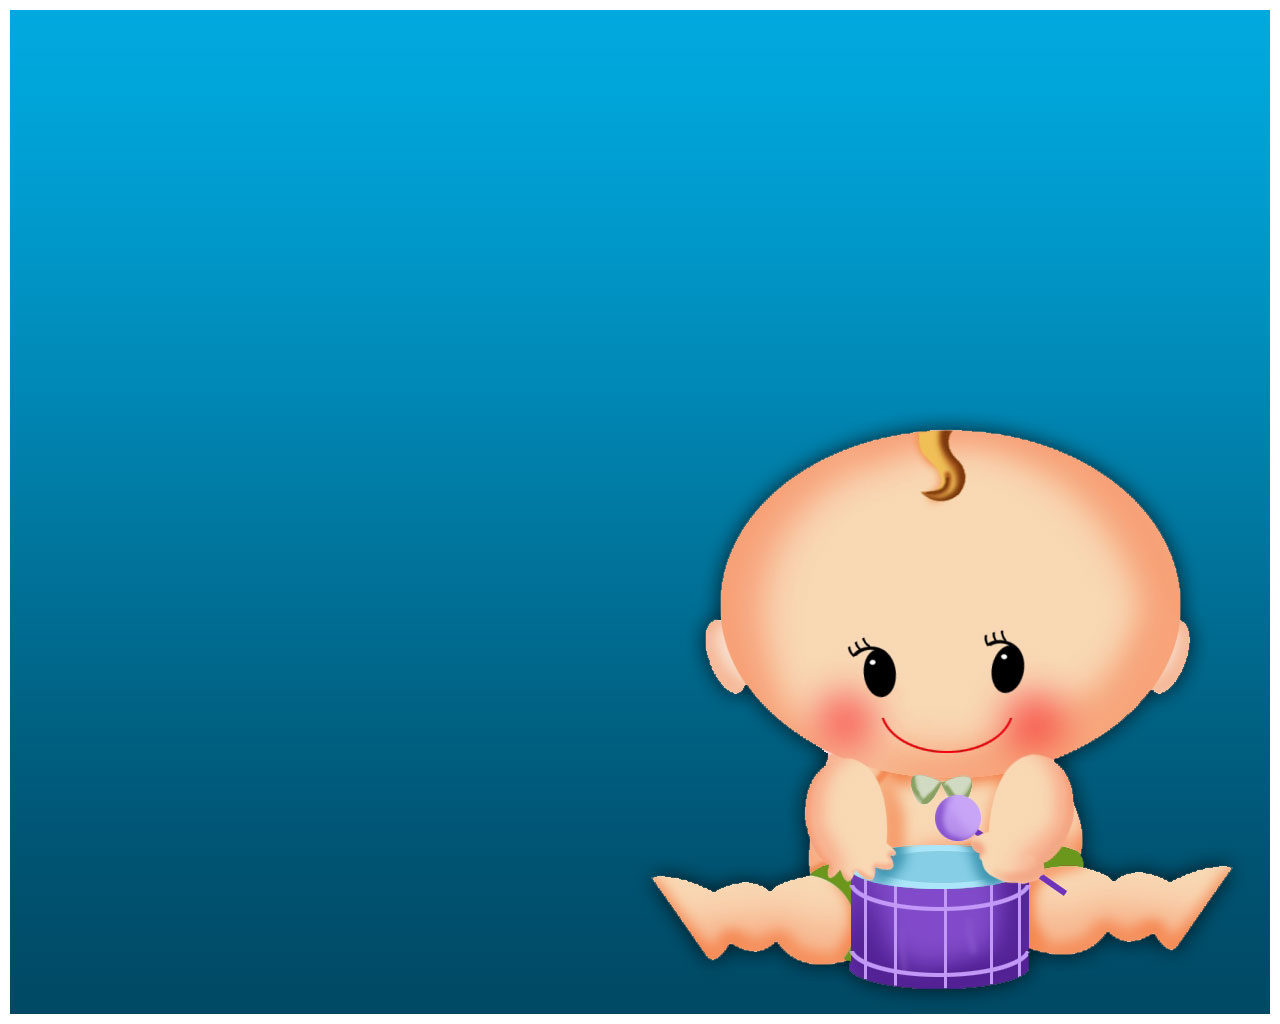 Small Baby PPT Backgrounds   PPT Backgrounds Templates 1280x1024